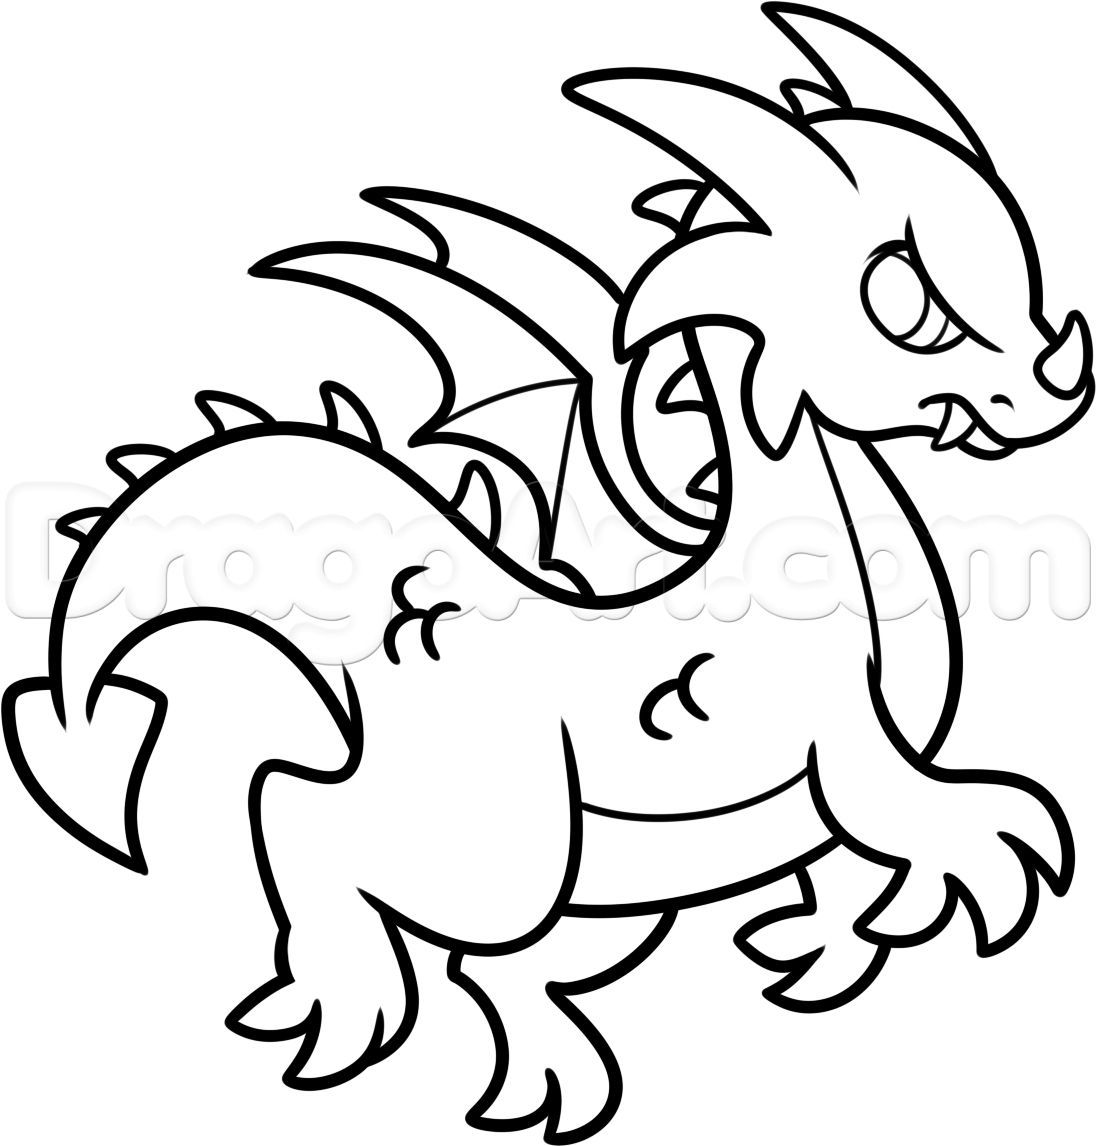 Drawing A Dragon Easy Cartoon Dragon Easy To Draw Coloring